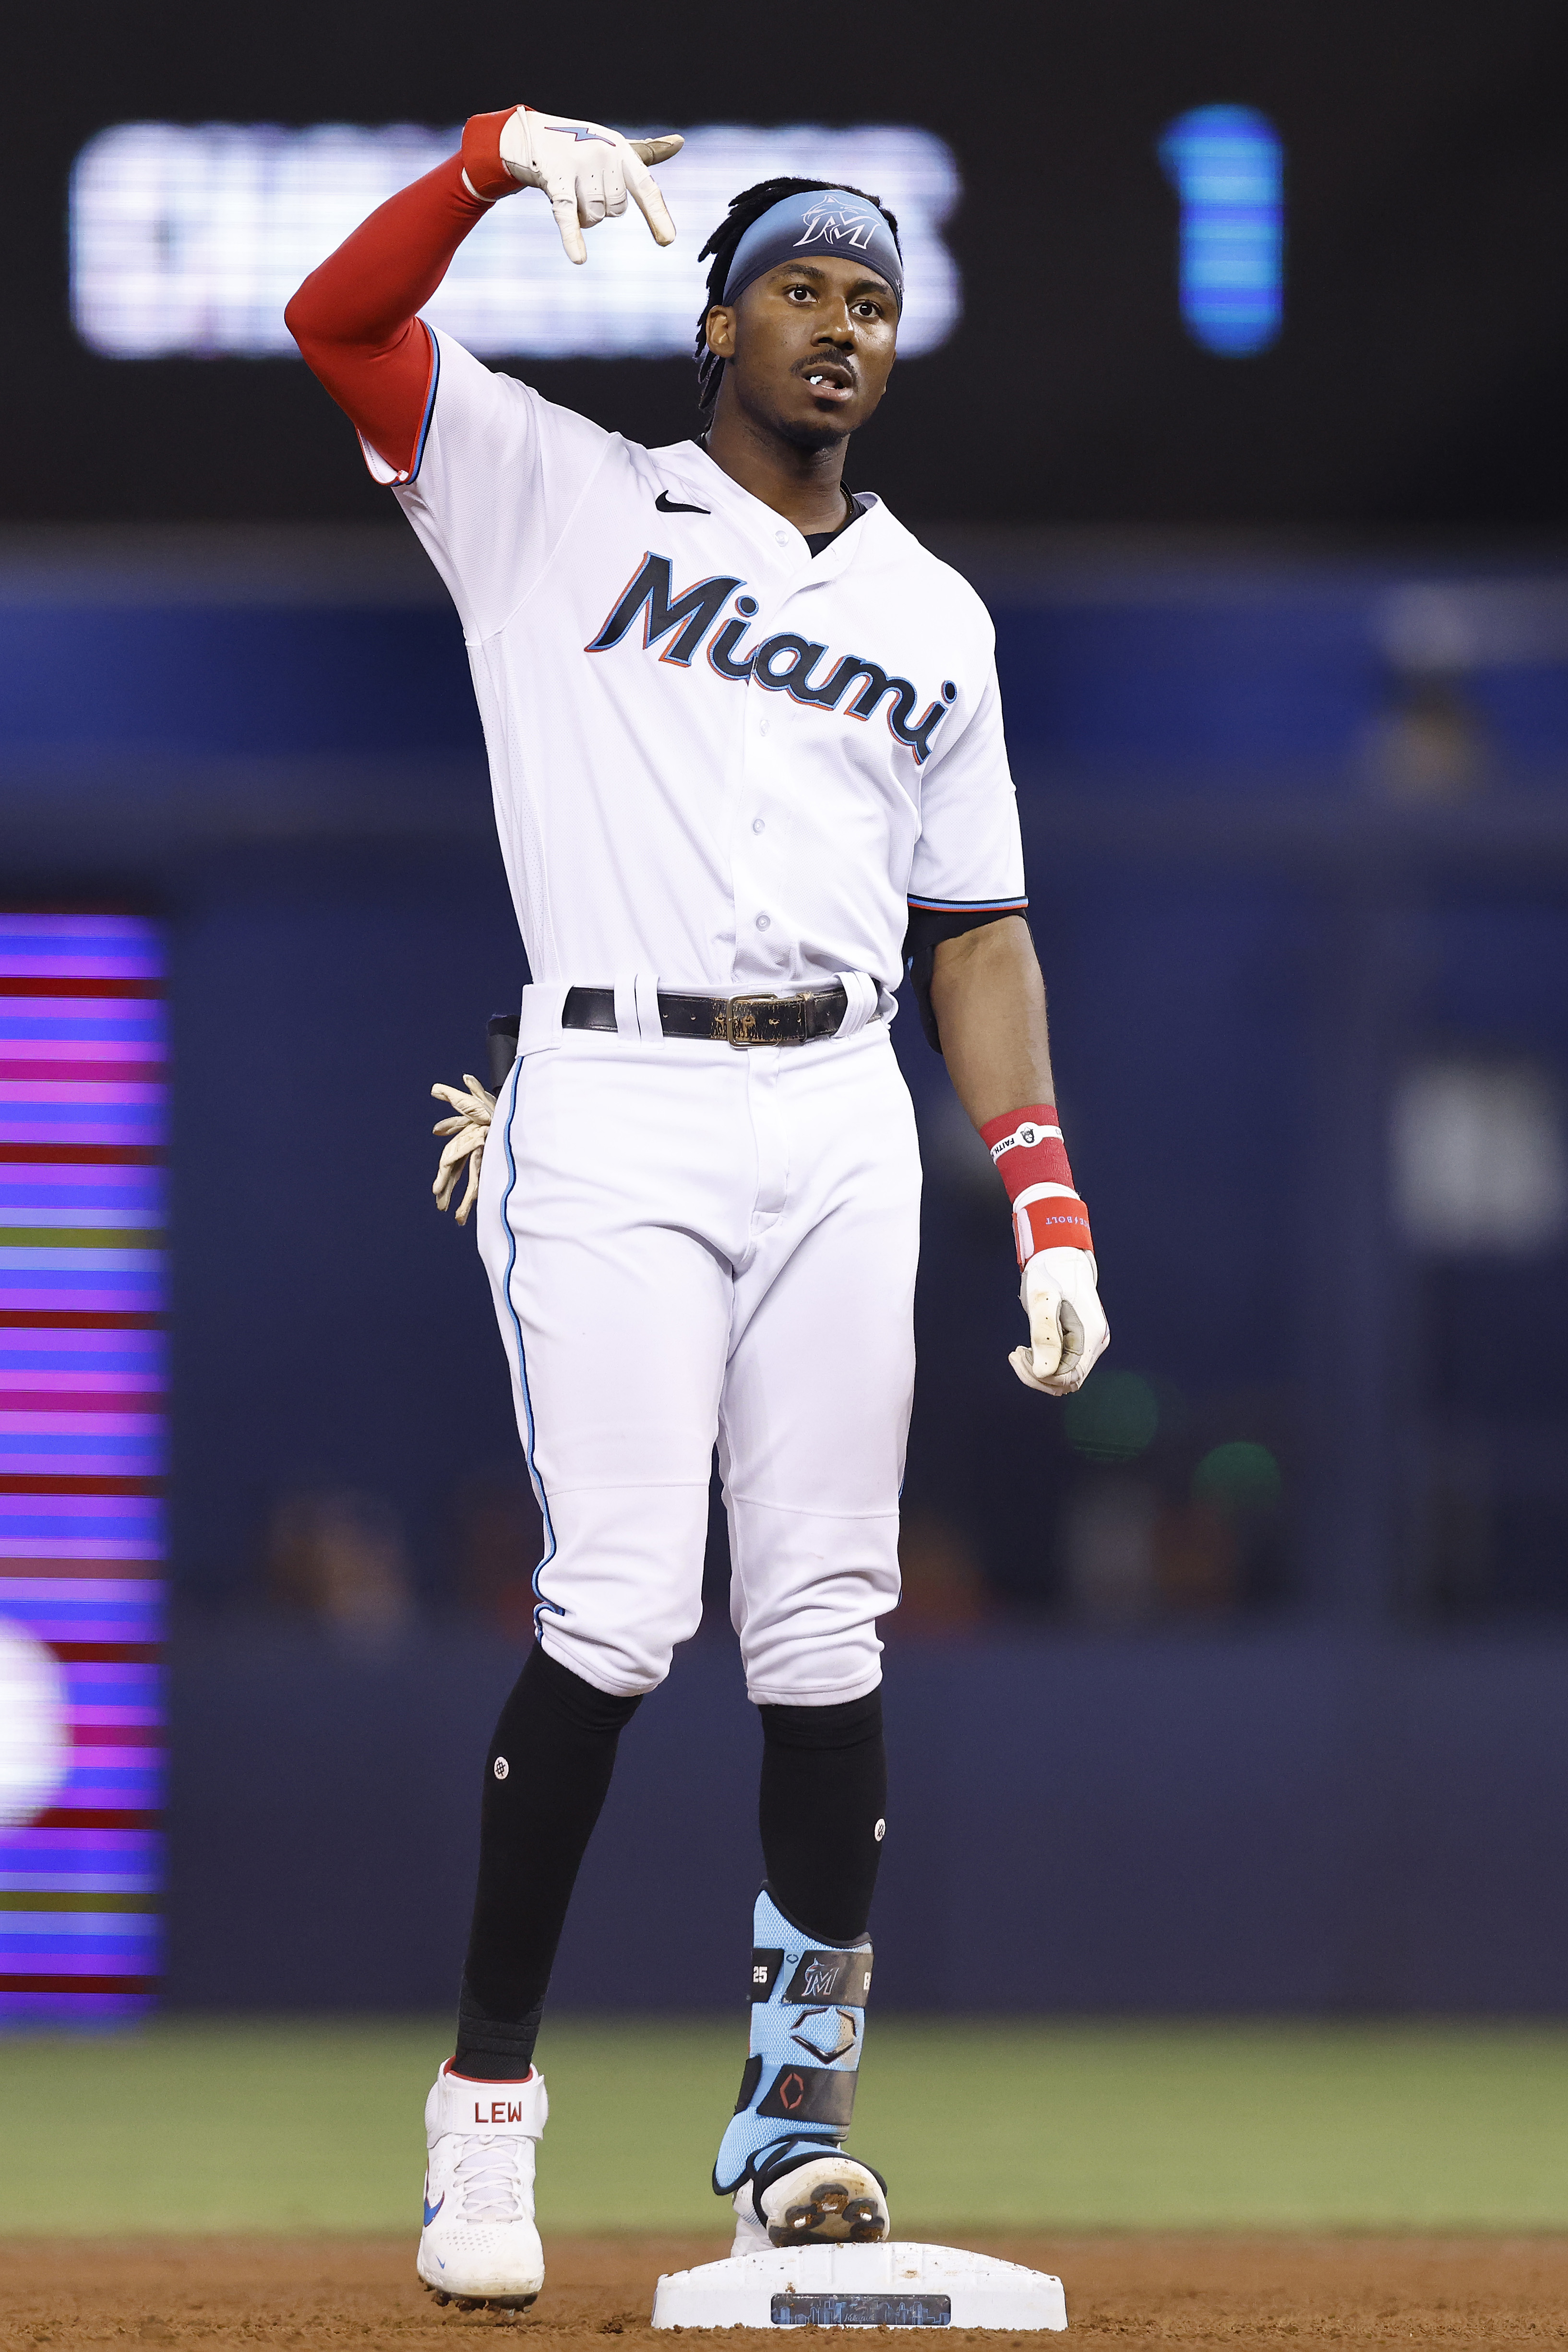 Lewis Brinson #25 of the Miami Marlins reacts after hitting a double during the fourth inning against the Washington Nationals at loanDepot park